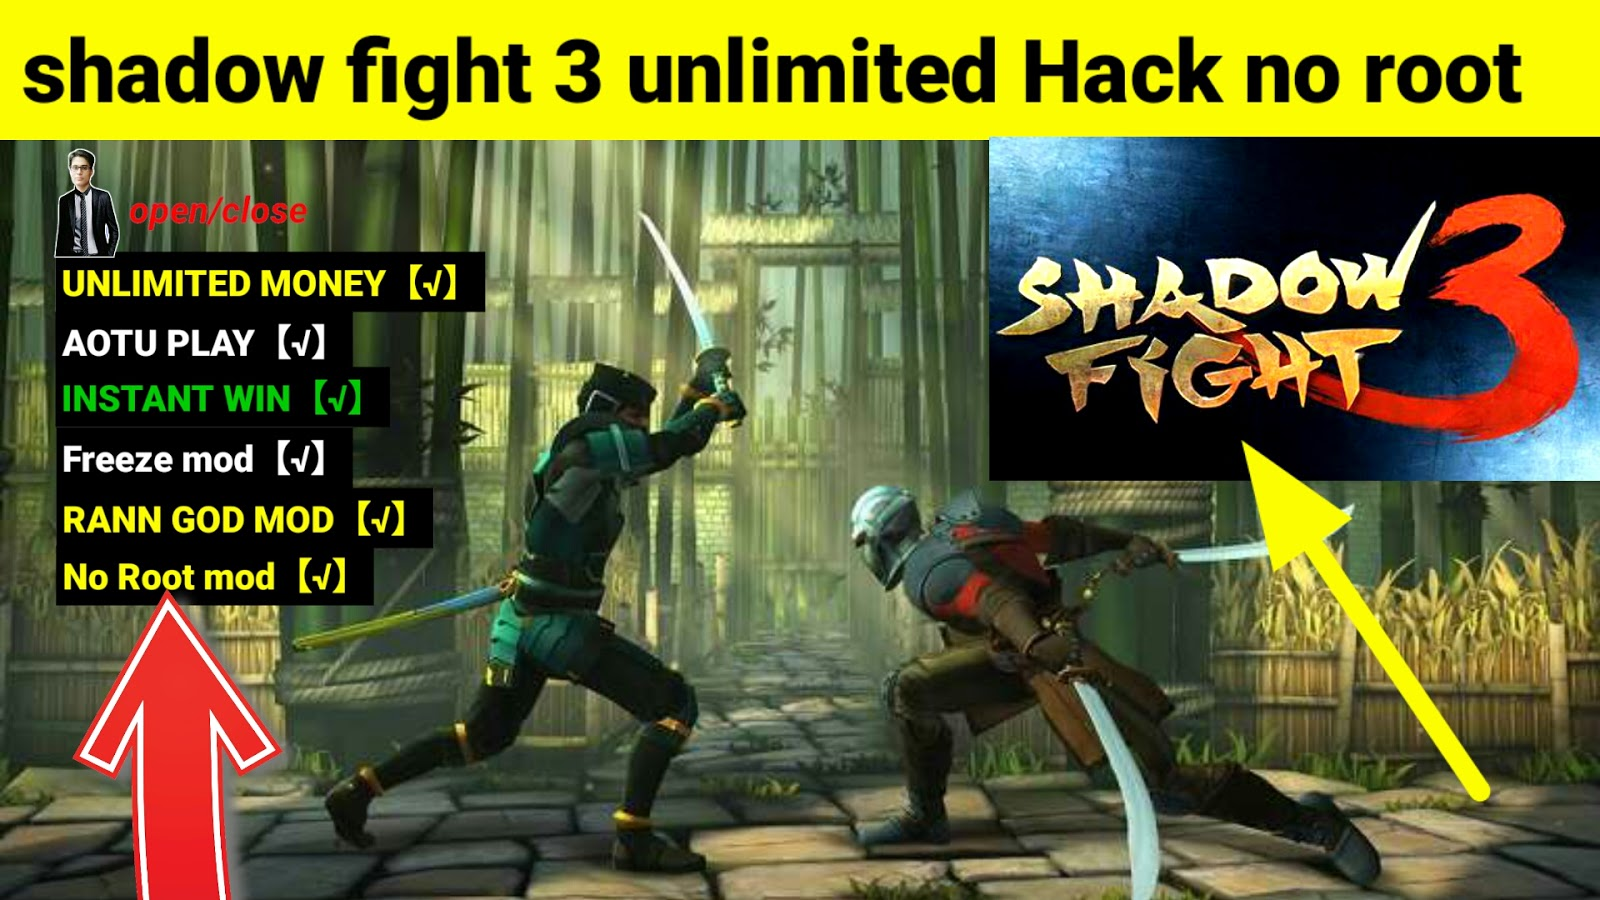 shadow fight 3 hack unlimited coins and gems: December 2017